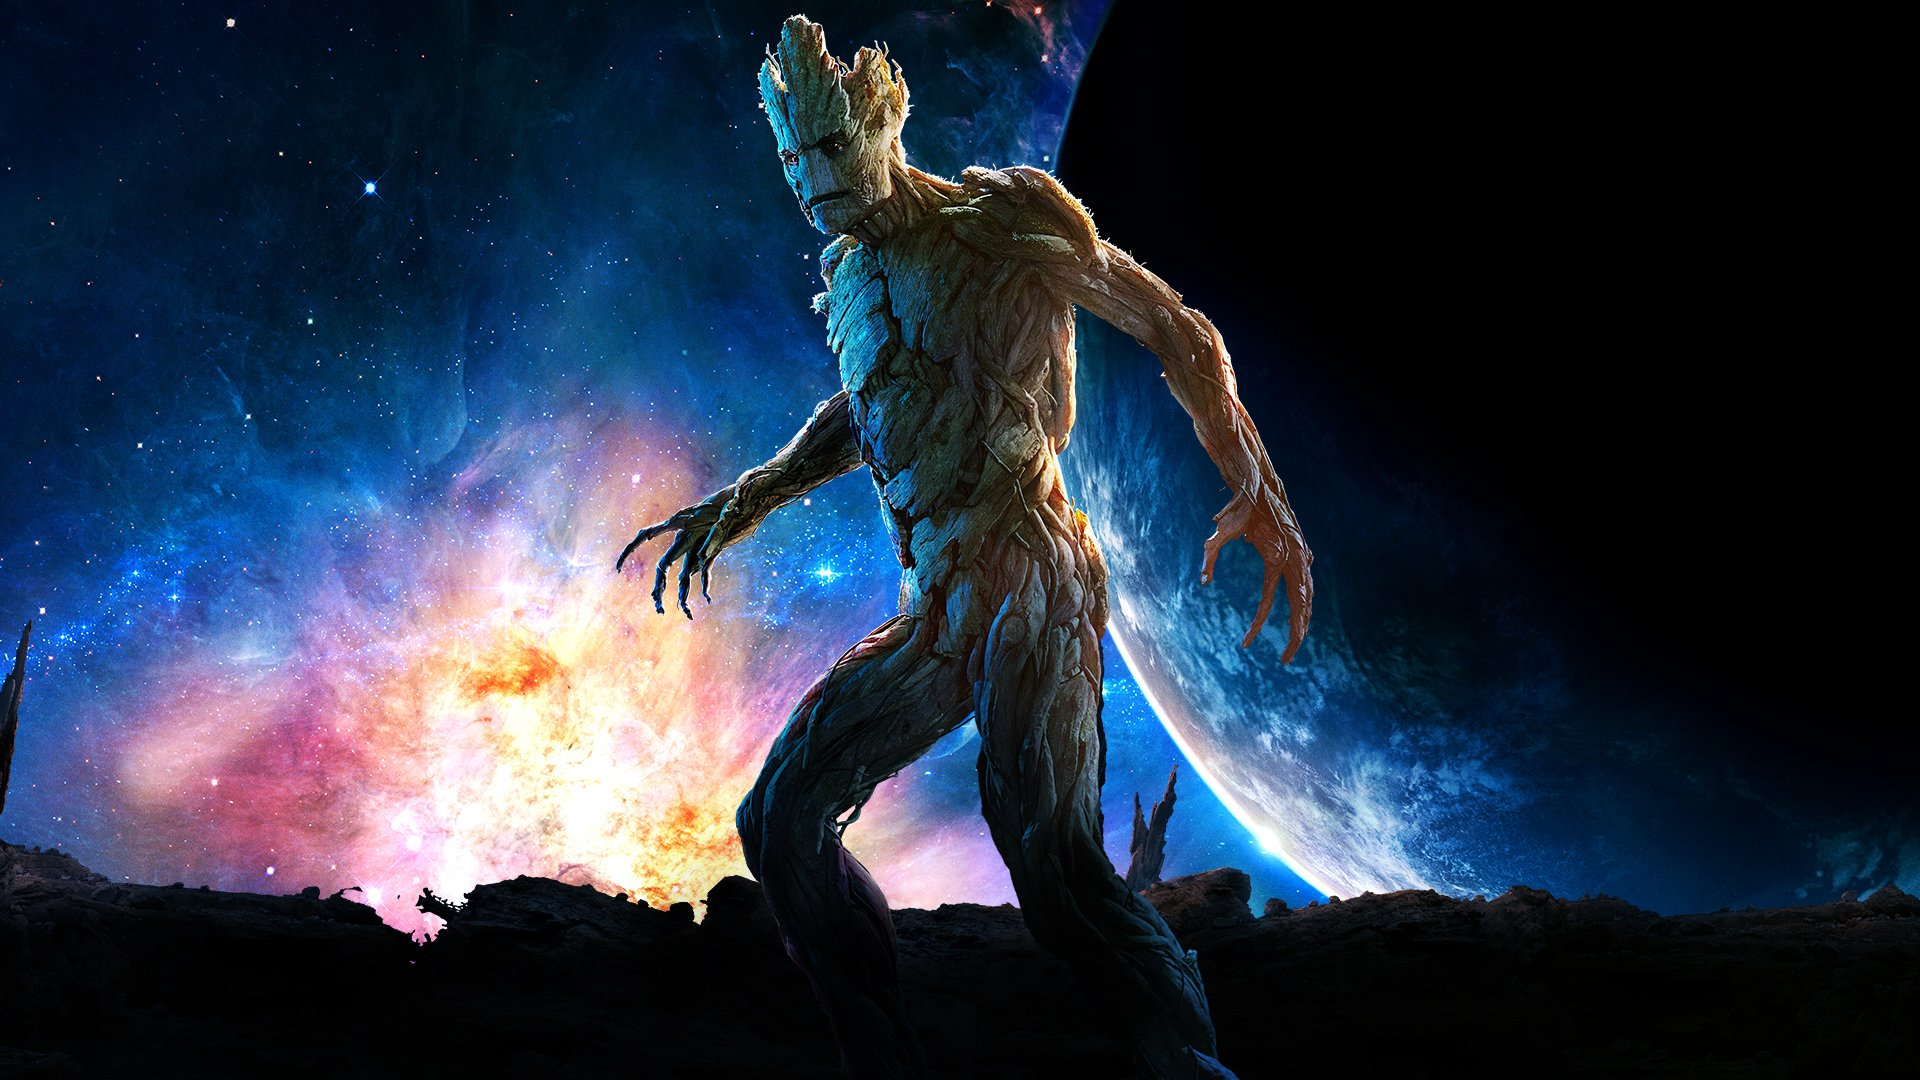 Free Download Guardians Of The Galaxy Full Hd Wallpaper And